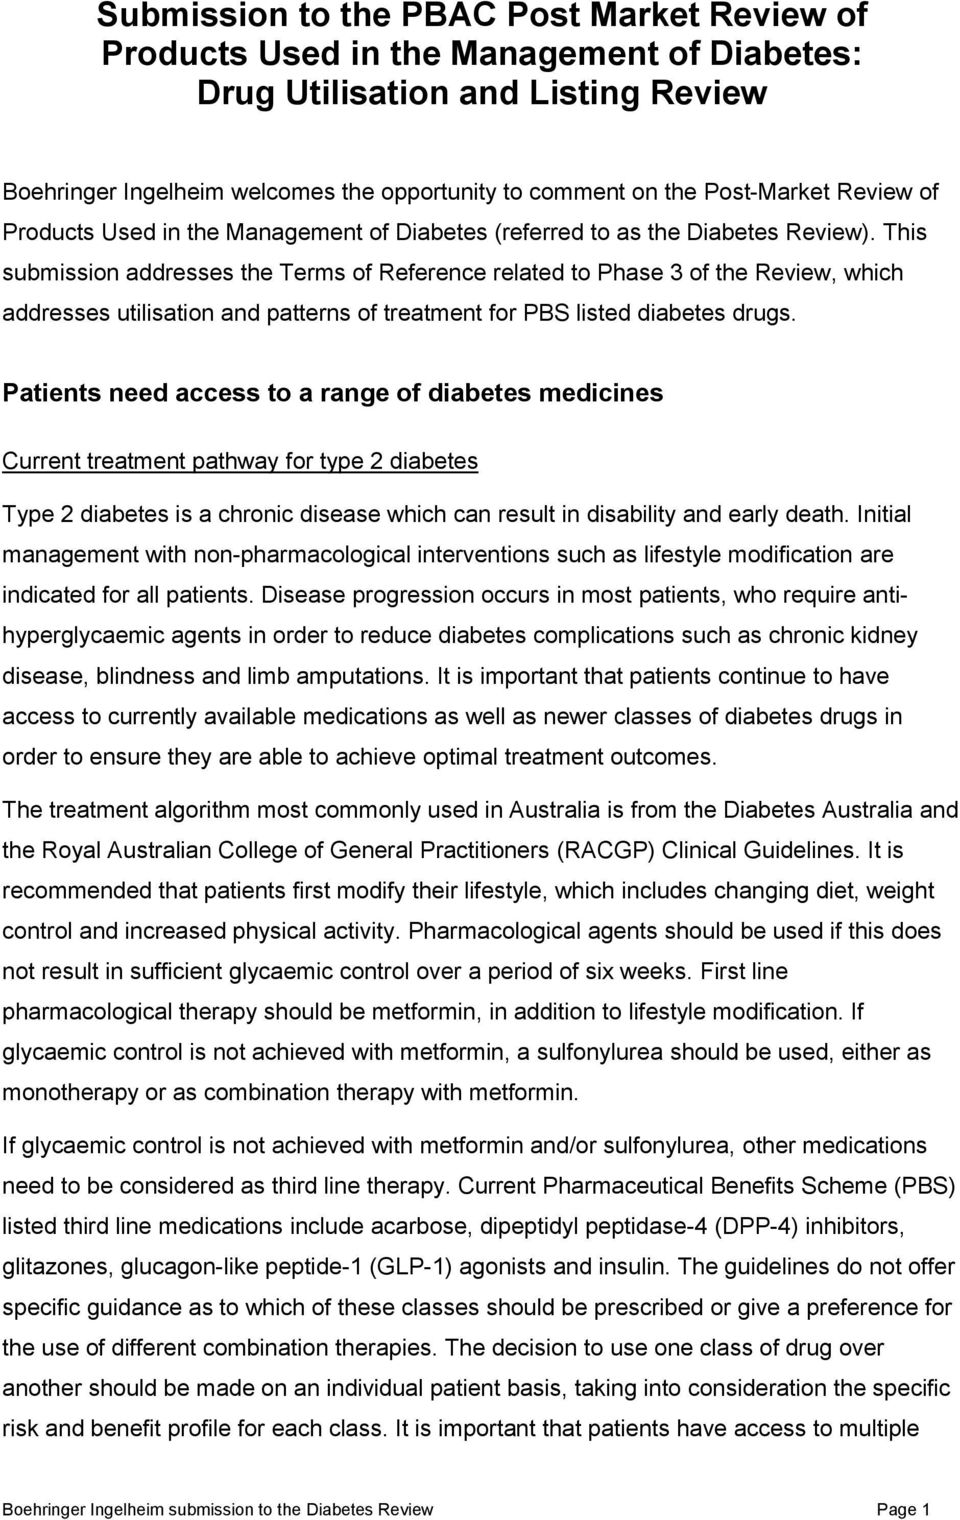 This submission addresses the Terms of Reference related to Phase 3 of the Review, which addresses utilisation and patterns of treatment for PBS listed diabetes drugs.